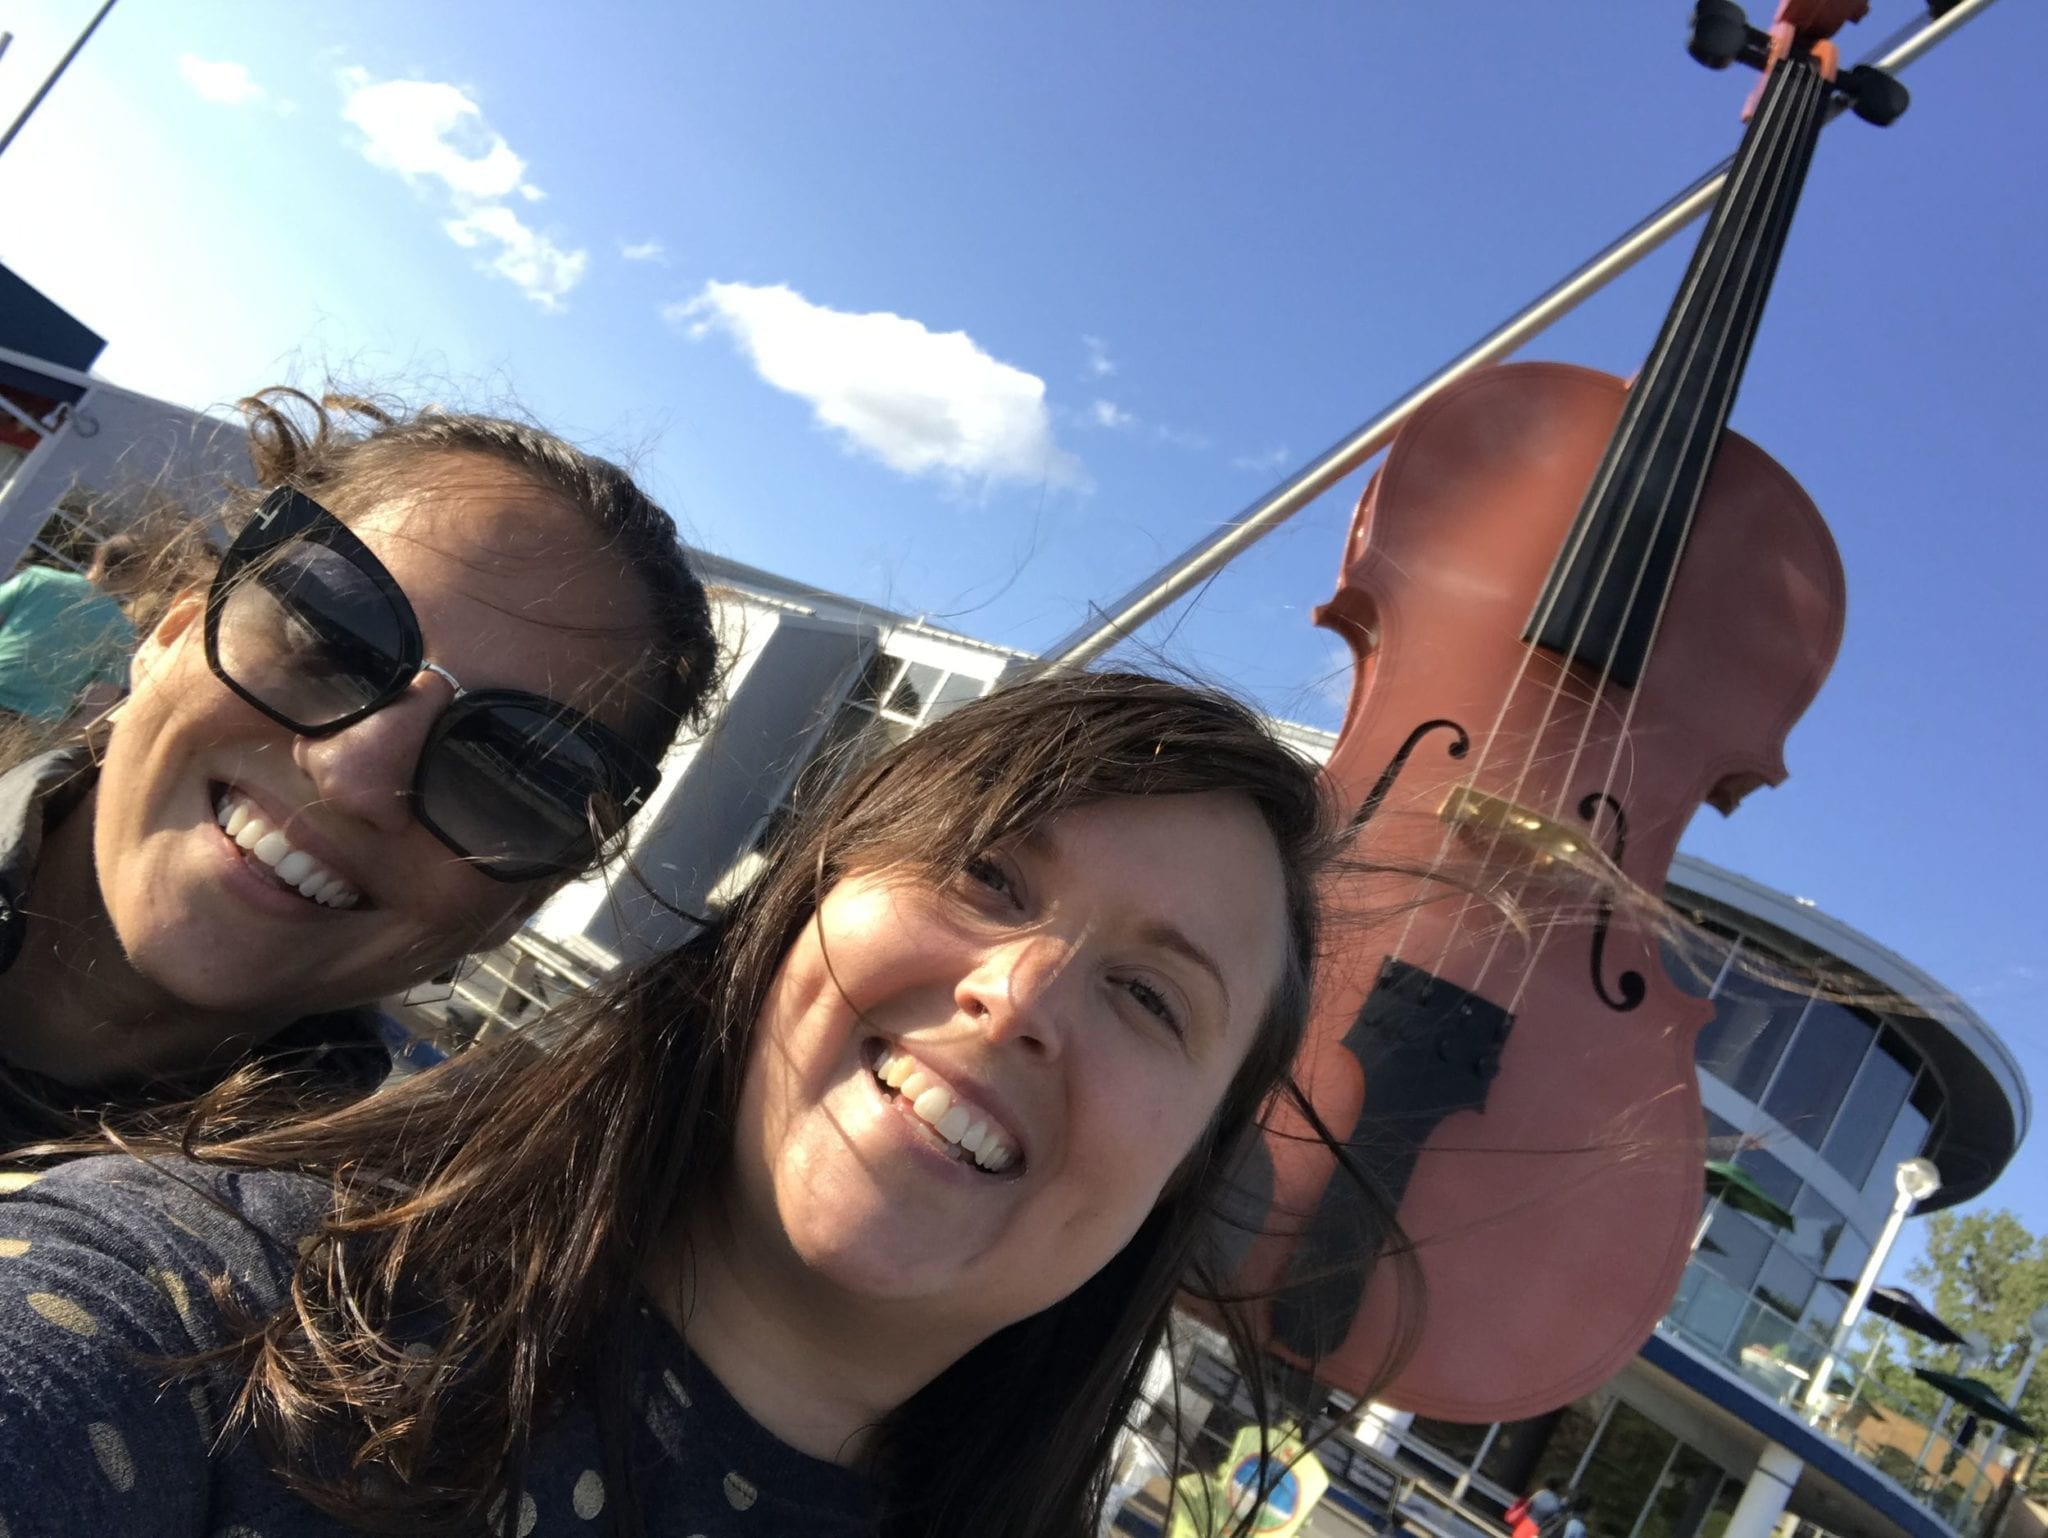 Kate and Cailin pose for a selfie in front of the giant fiddle, standing up in Sydney, Nova Scotia.